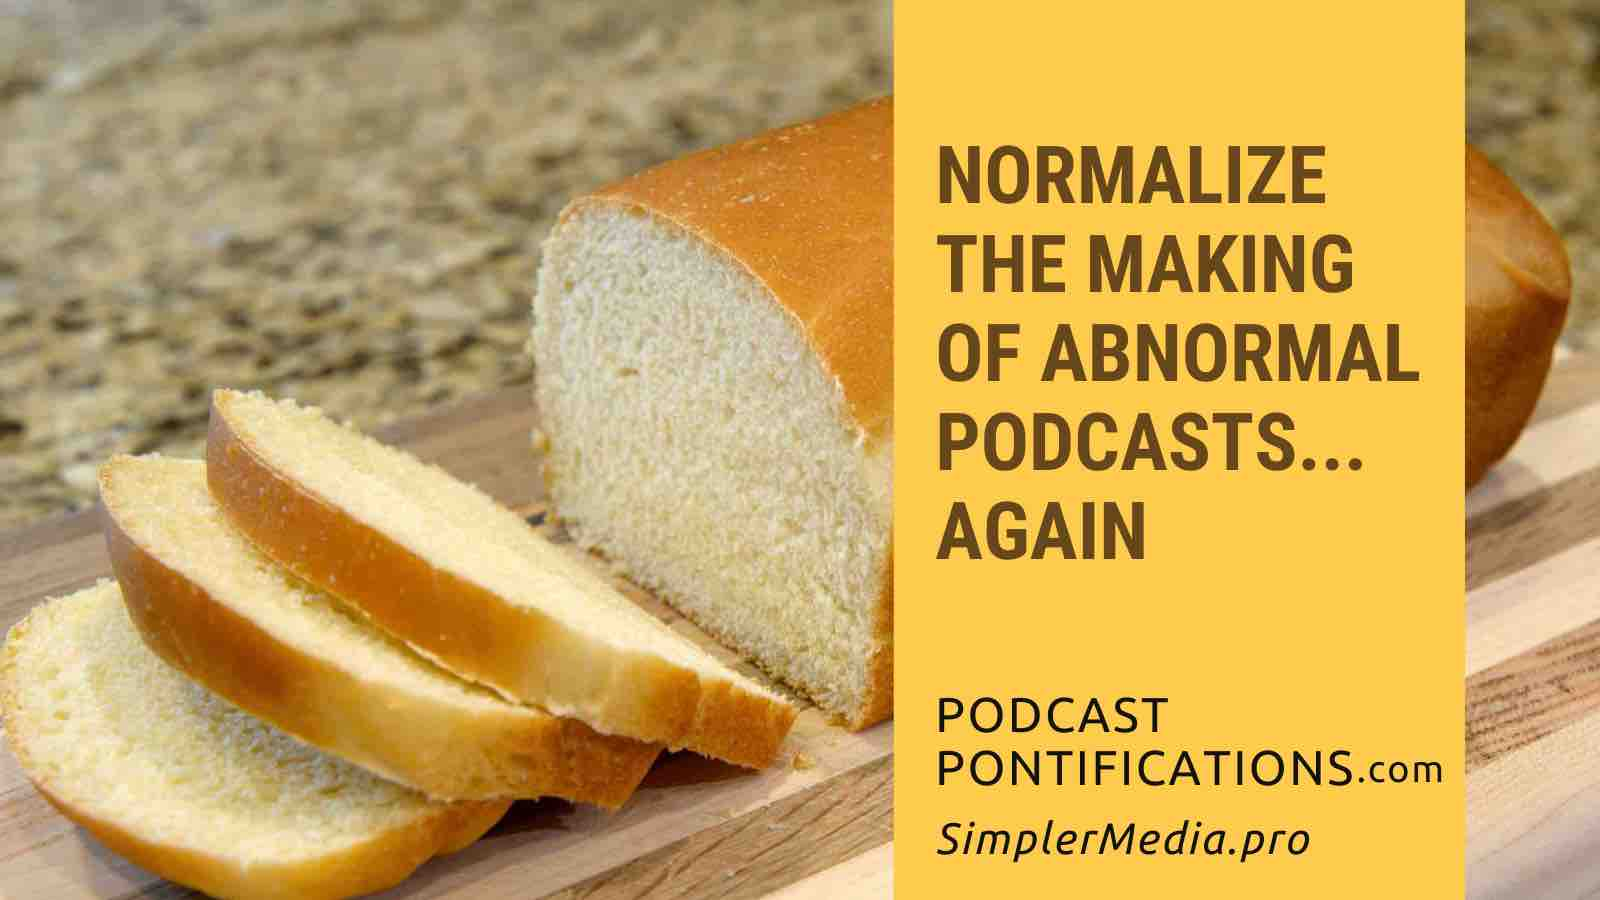 Normalize The Making Of Abnormal Podcasts... Again